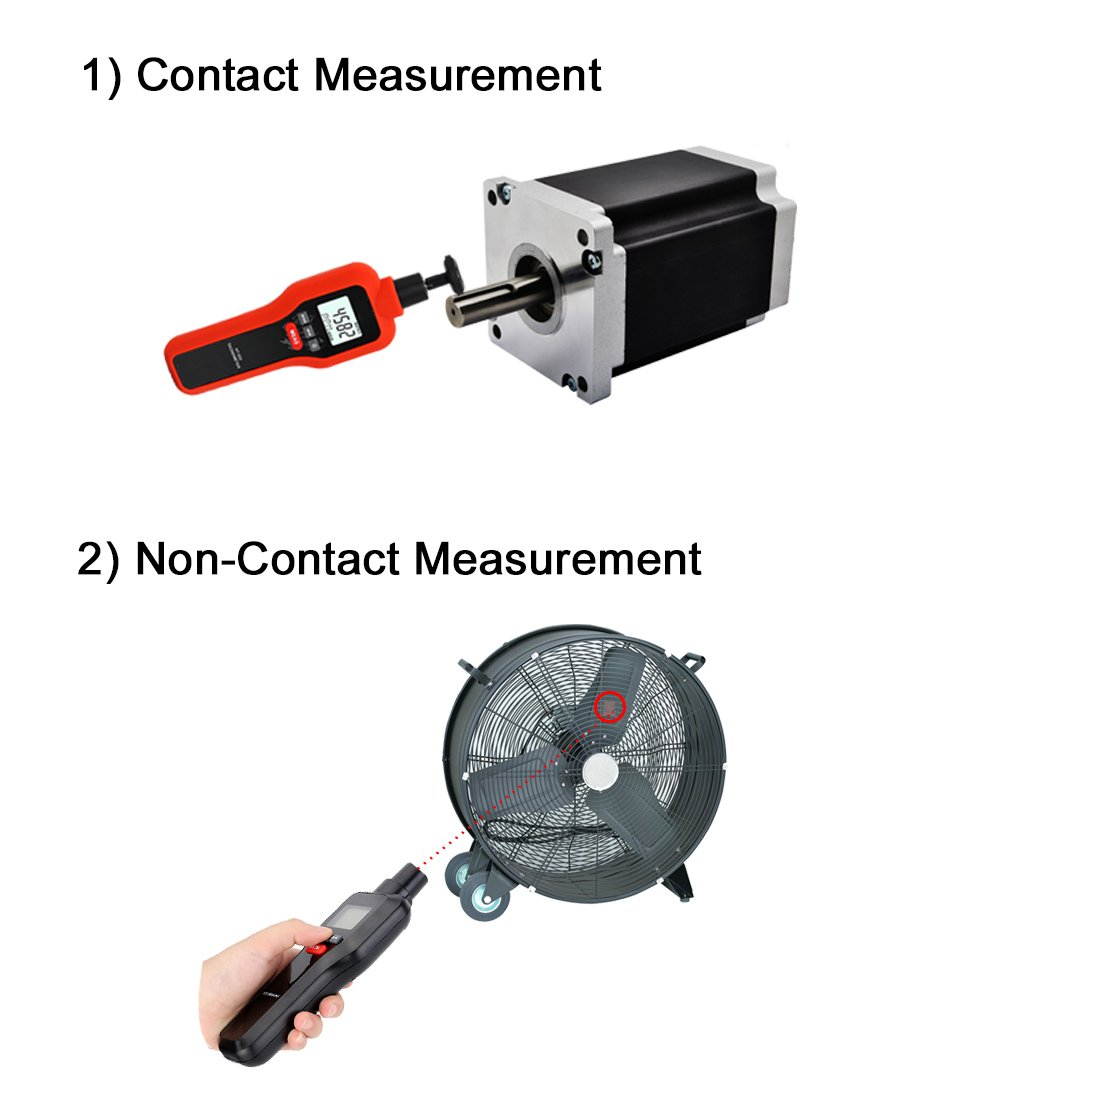 Mengshen Digital Tachometer, 2 in 1 Non-Contact & Contact Tach Rotation Speed Measurement RPM Meter, M522